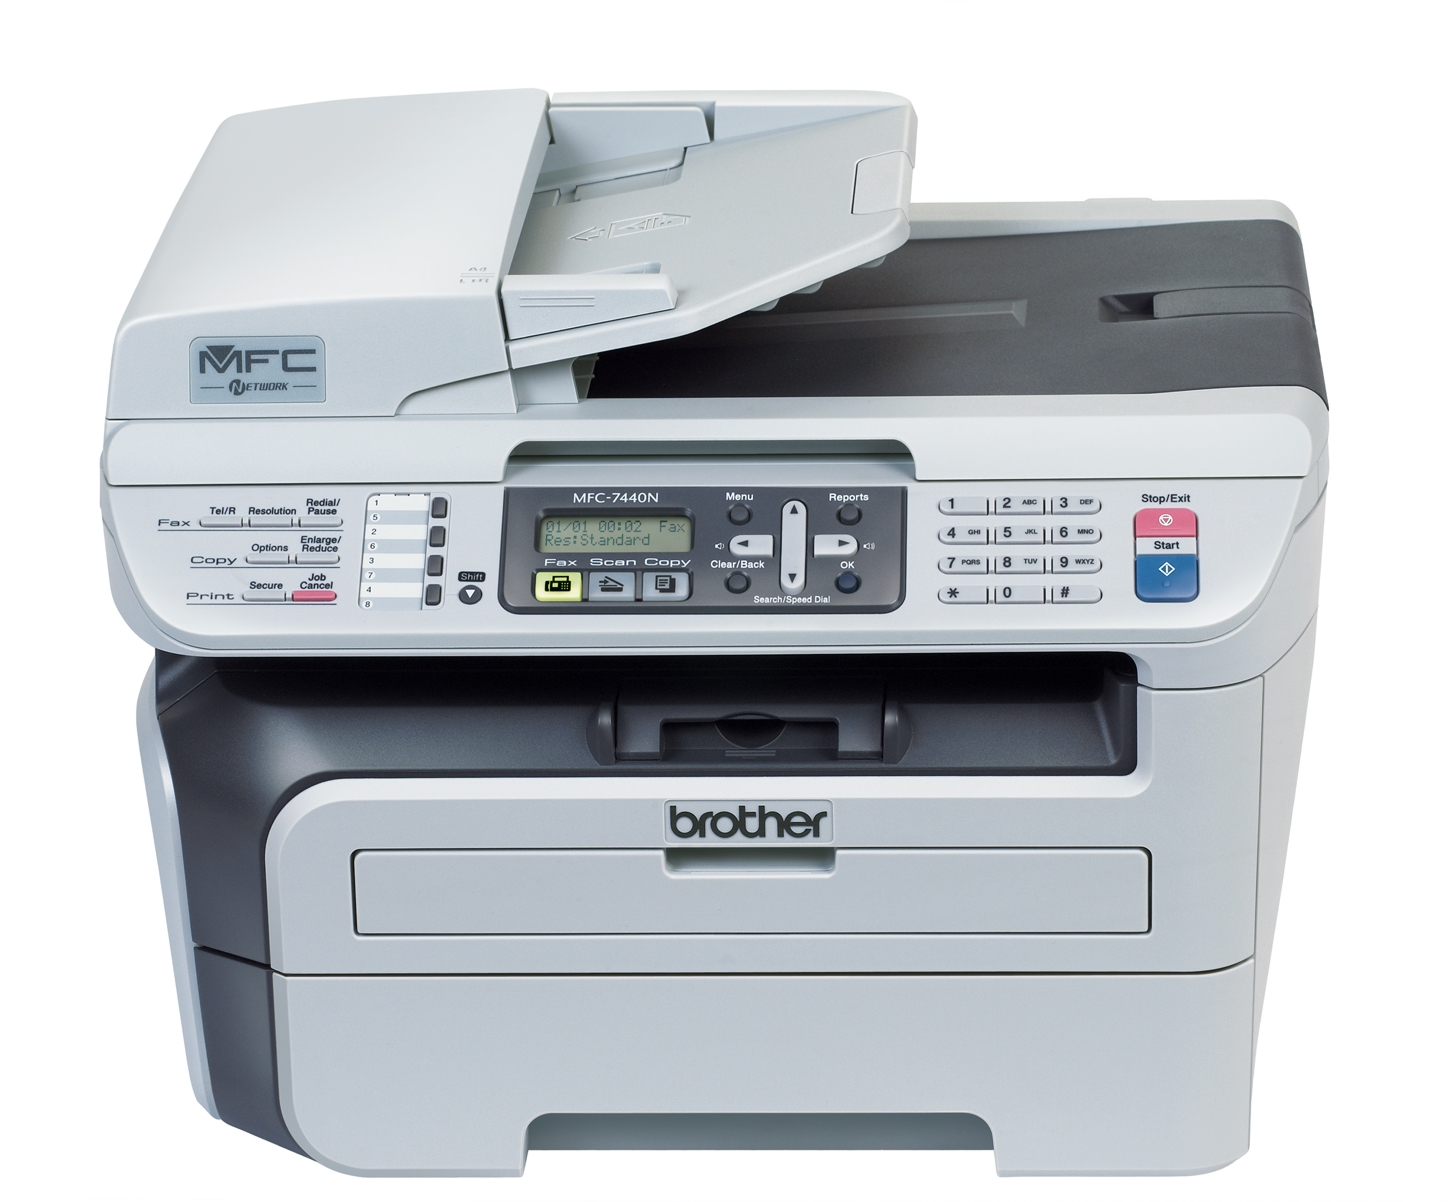 Brother mfc-7440n drivers download update brother software.